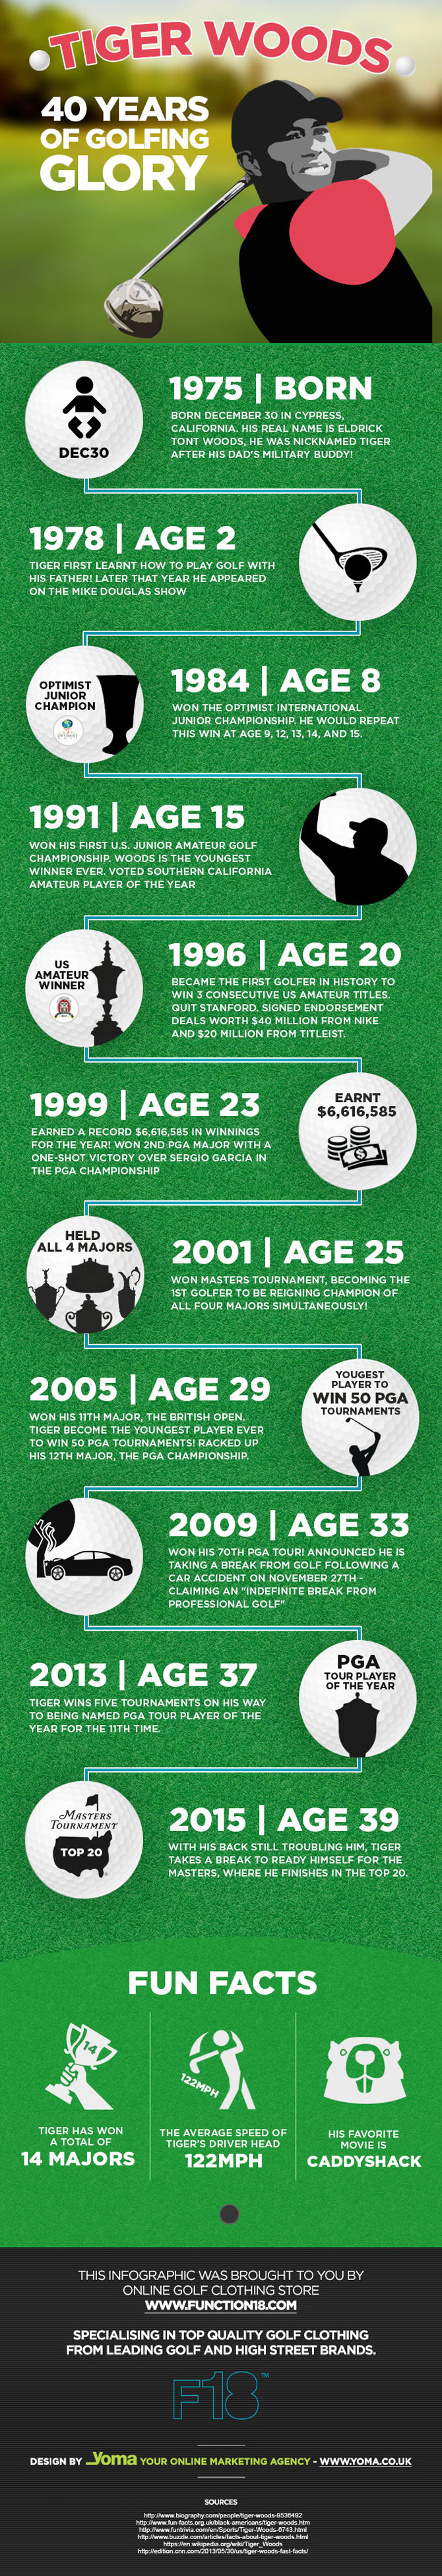 Tiger Woods: 40 Years of Golfing Glory by Function 18